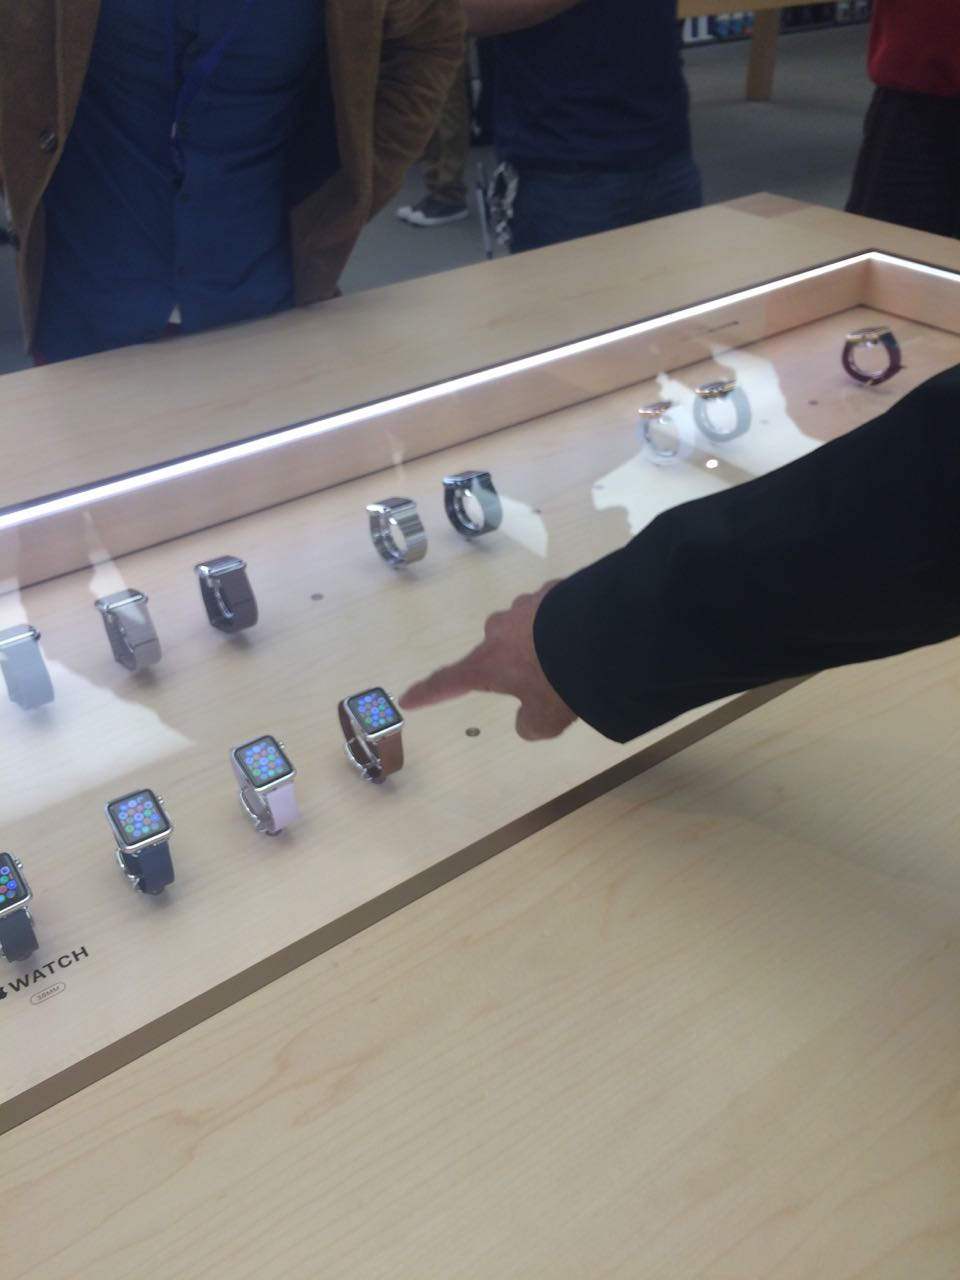 apple_watch_apple Store2.jpg